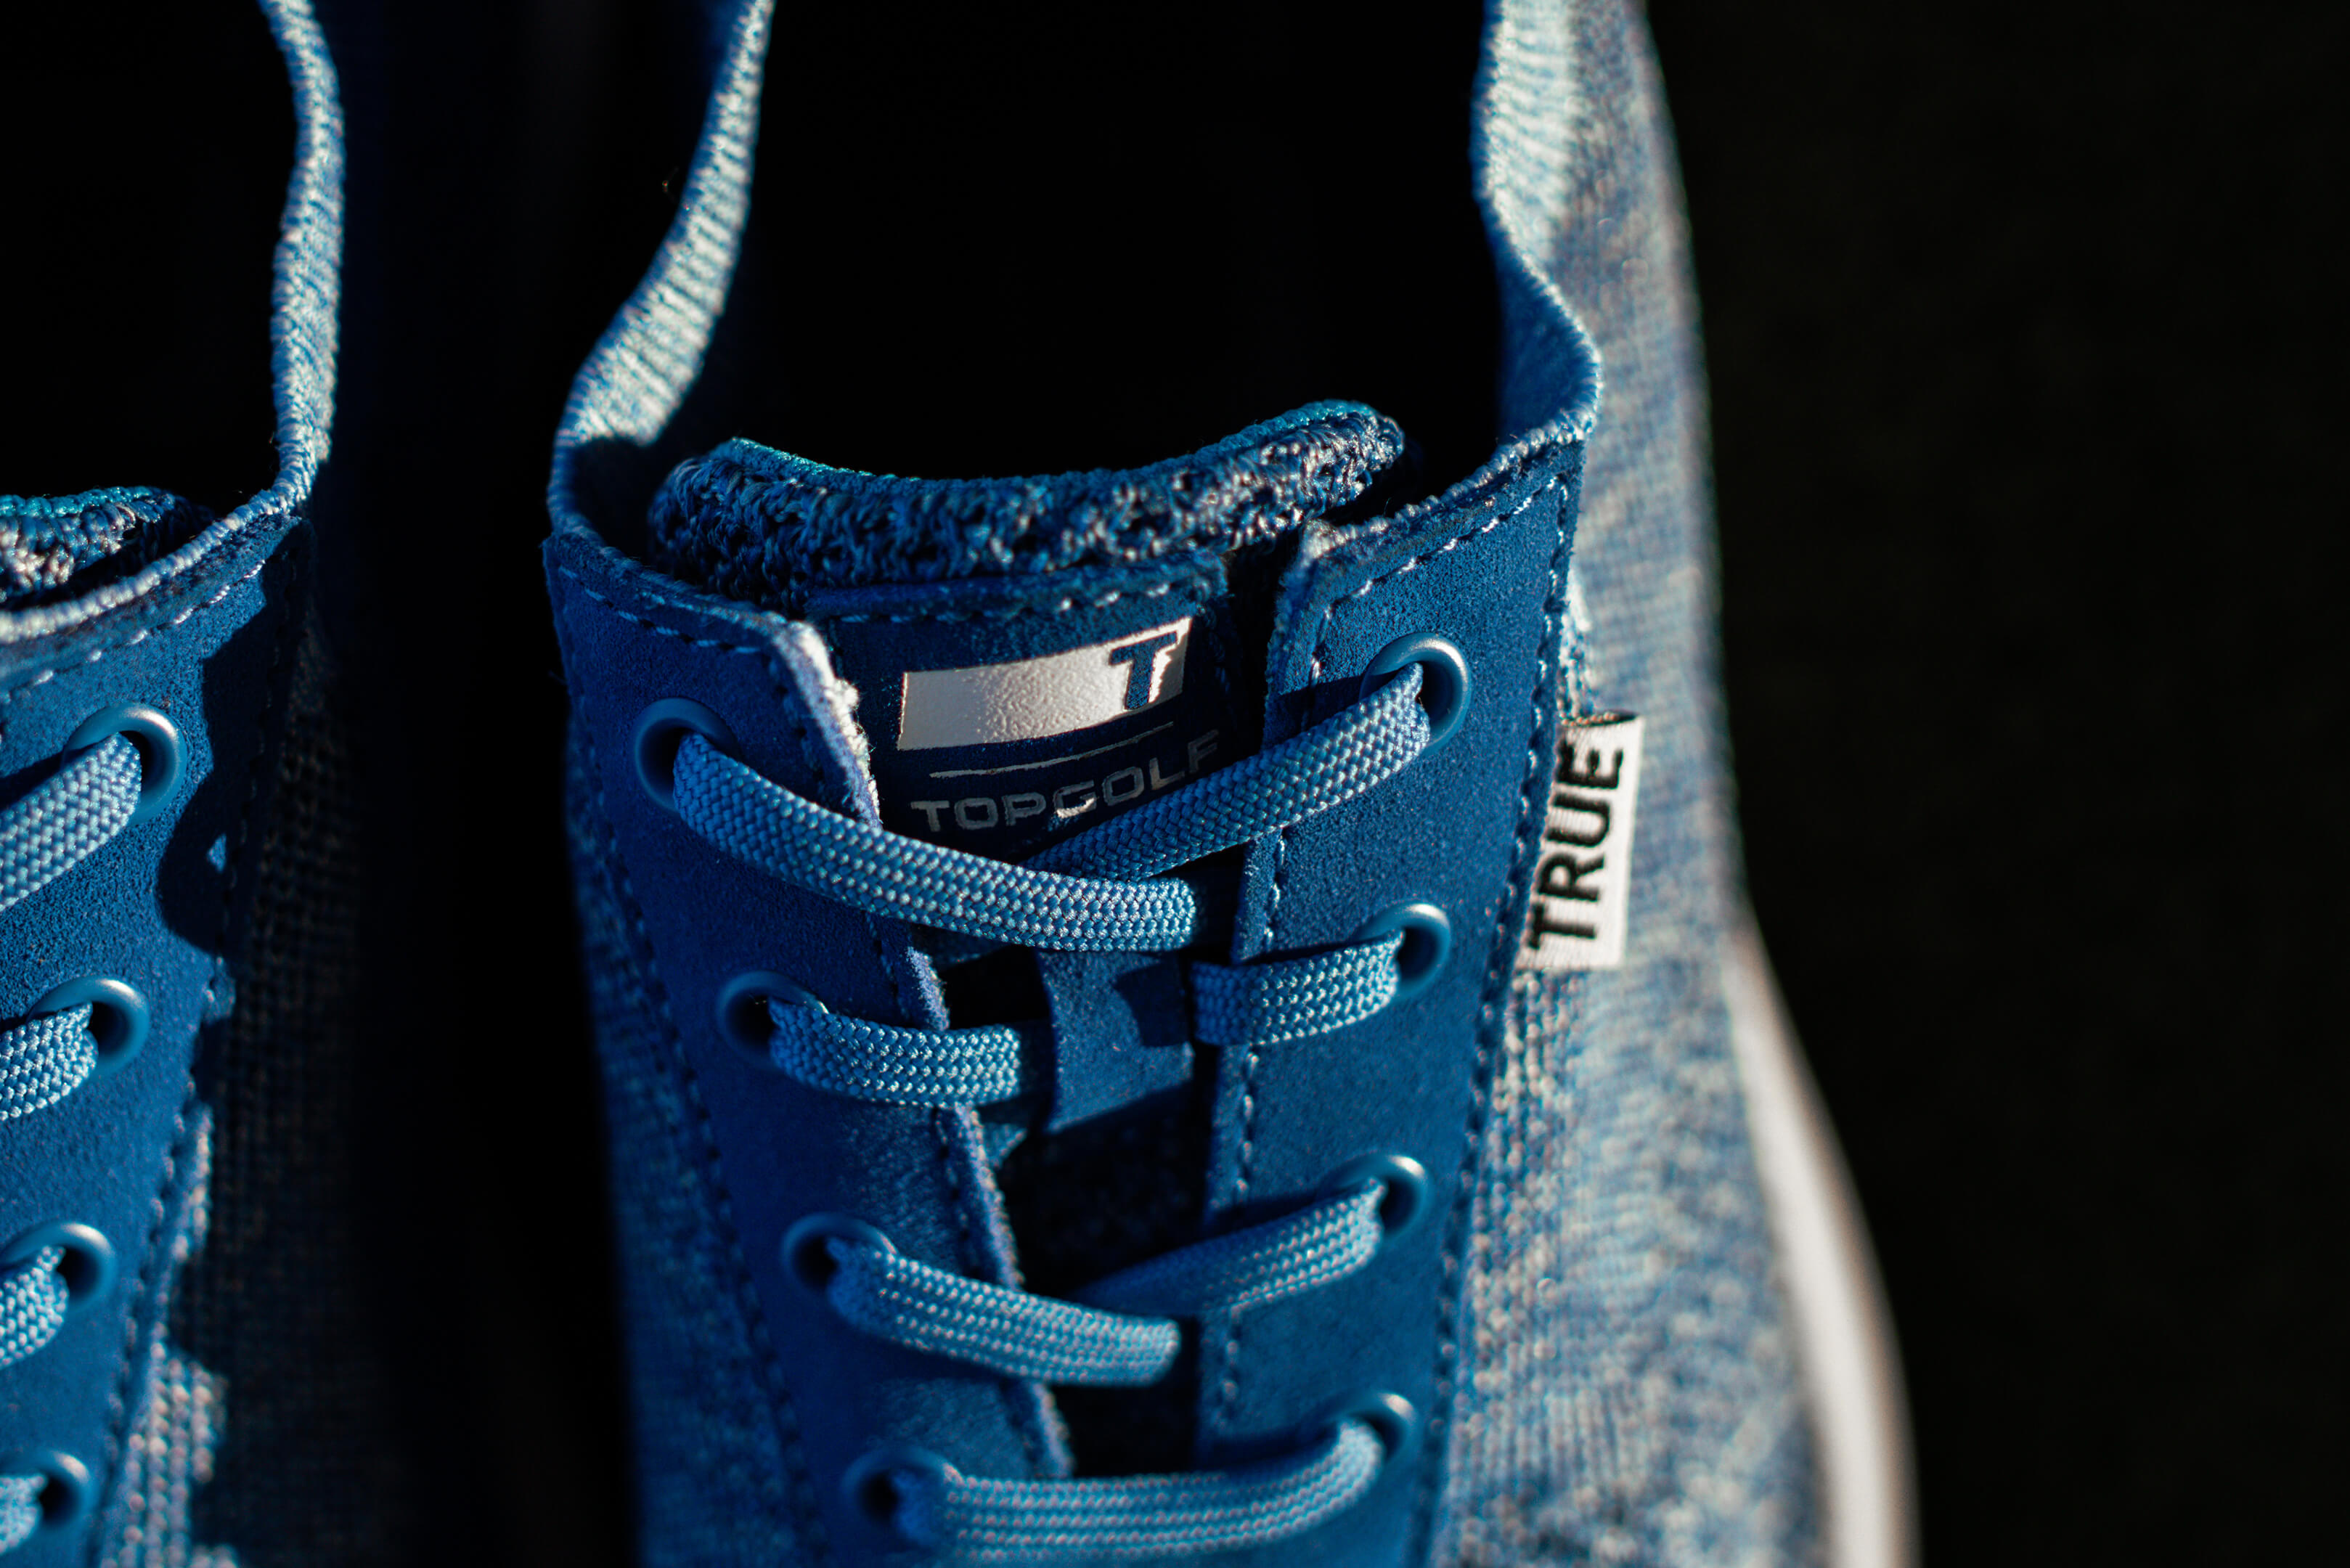 TRUE Knit x TopGolf Built for Comfort